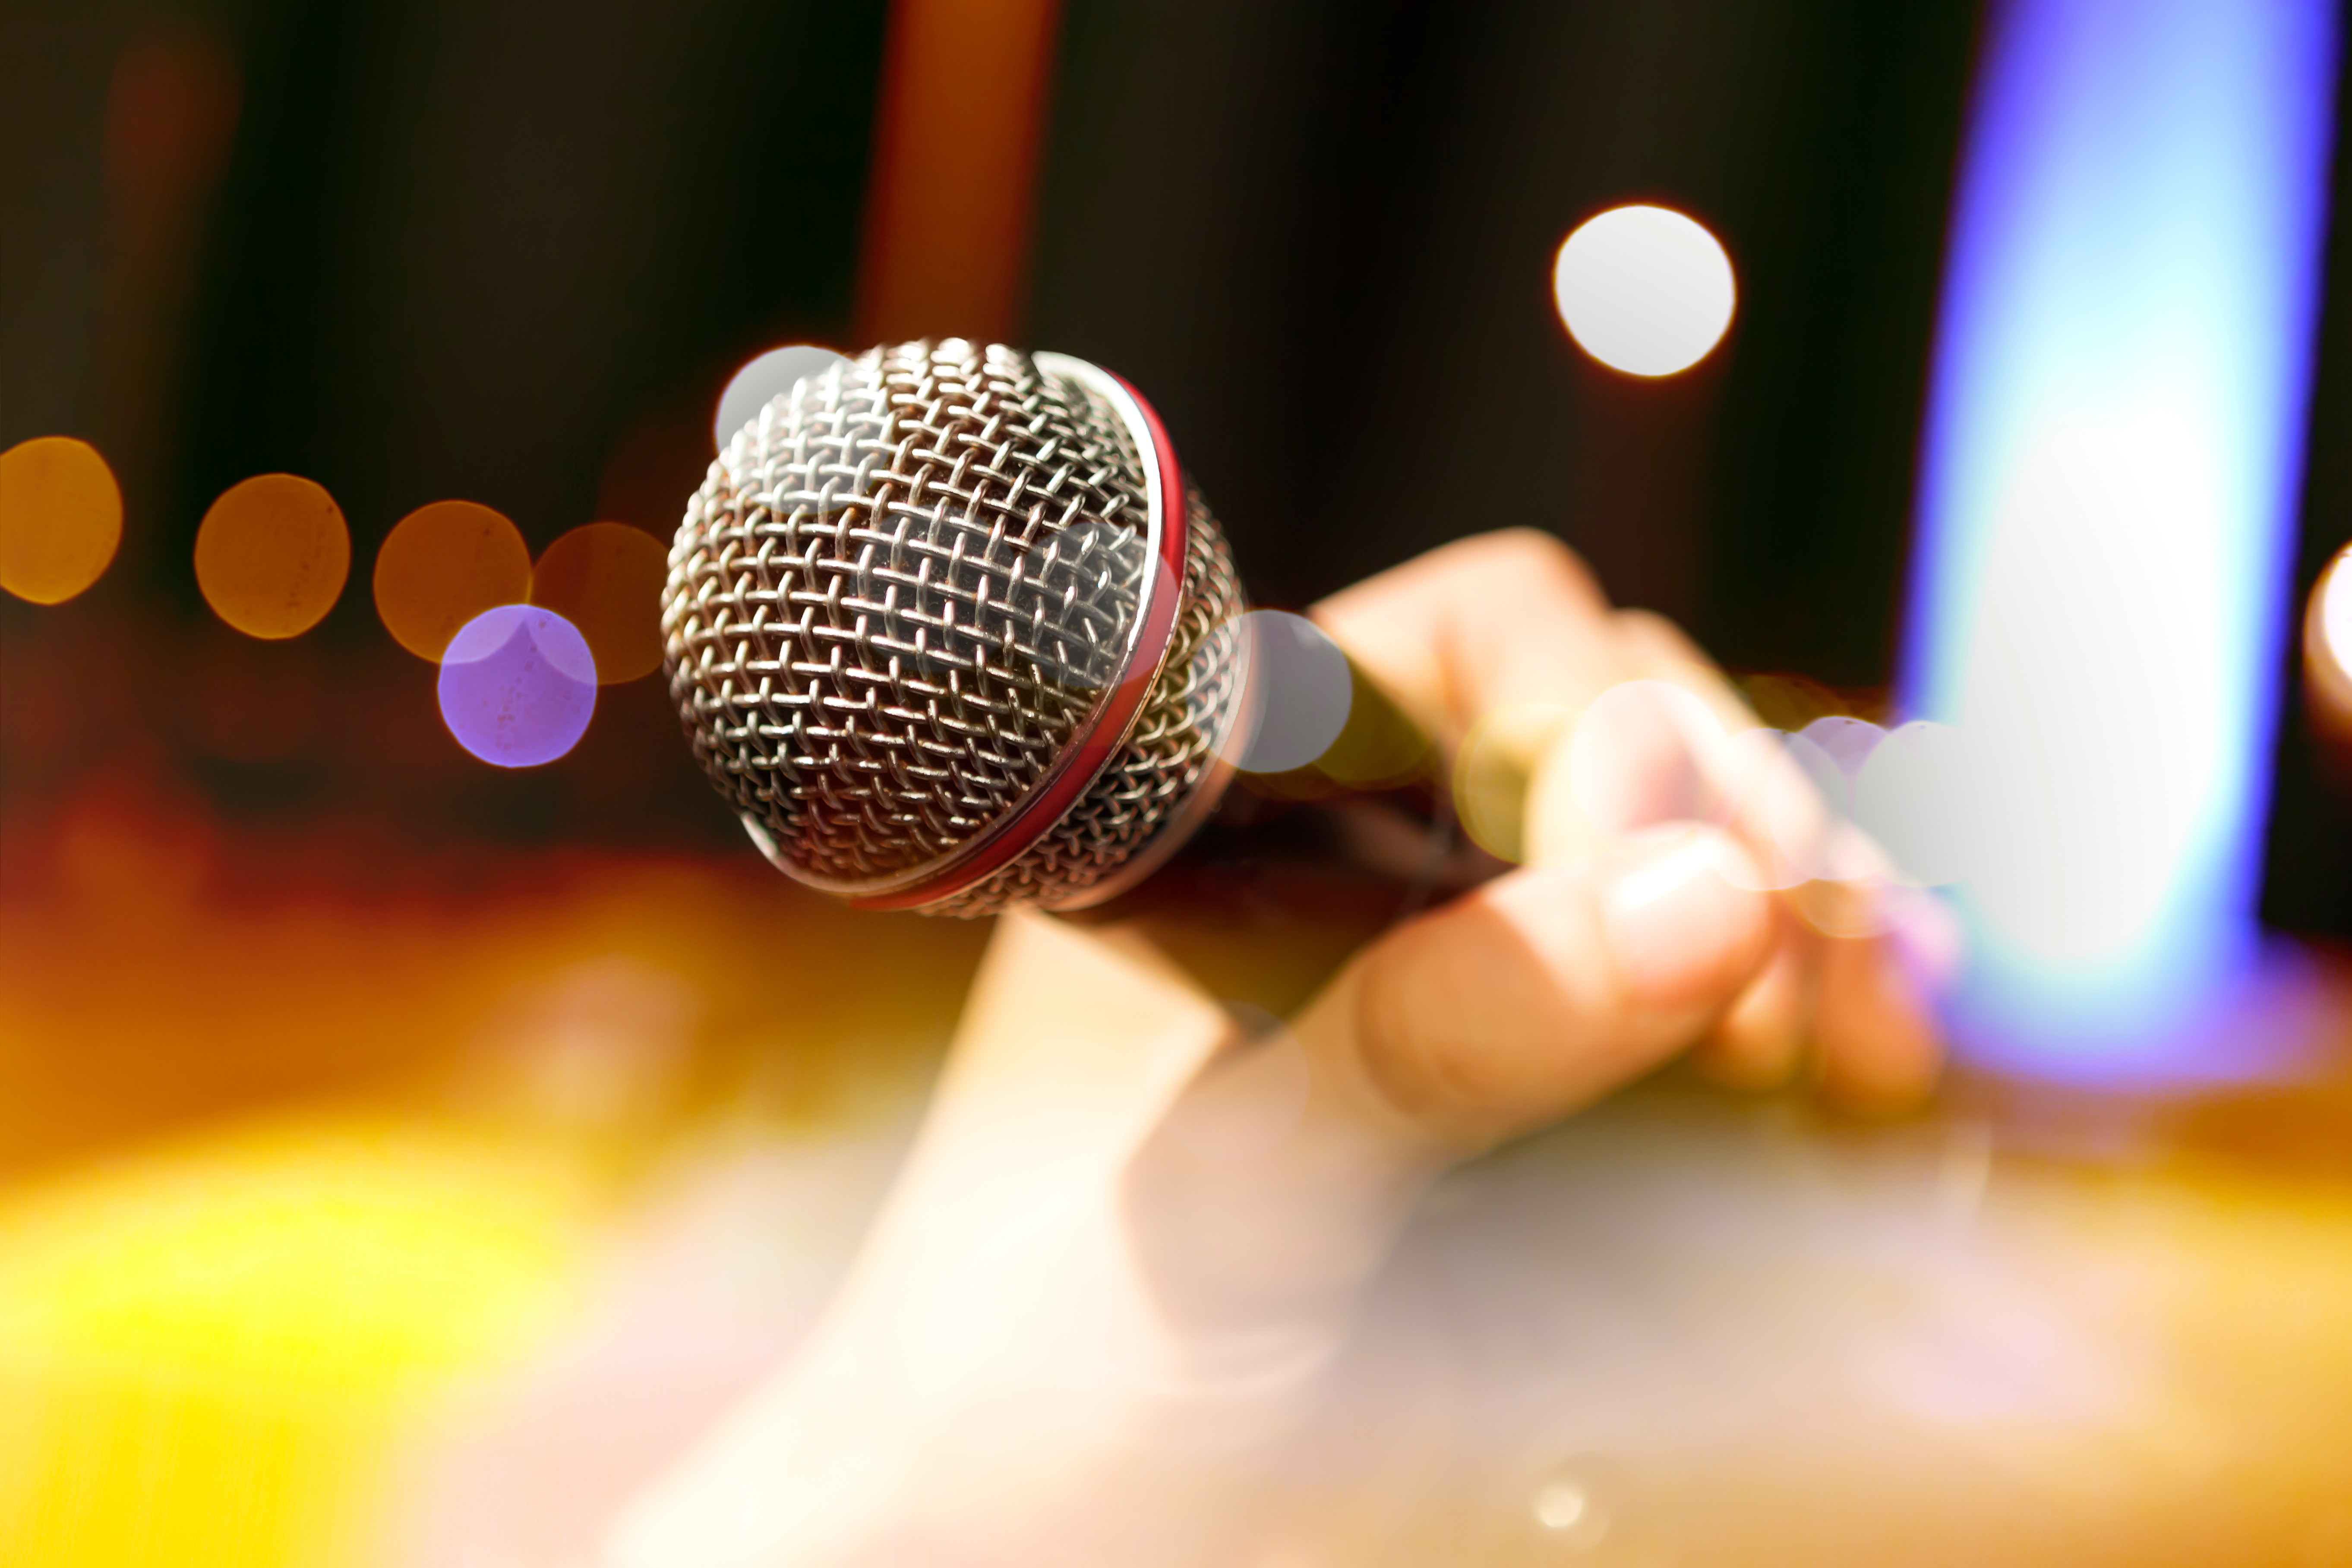 A hand holding a microphone.